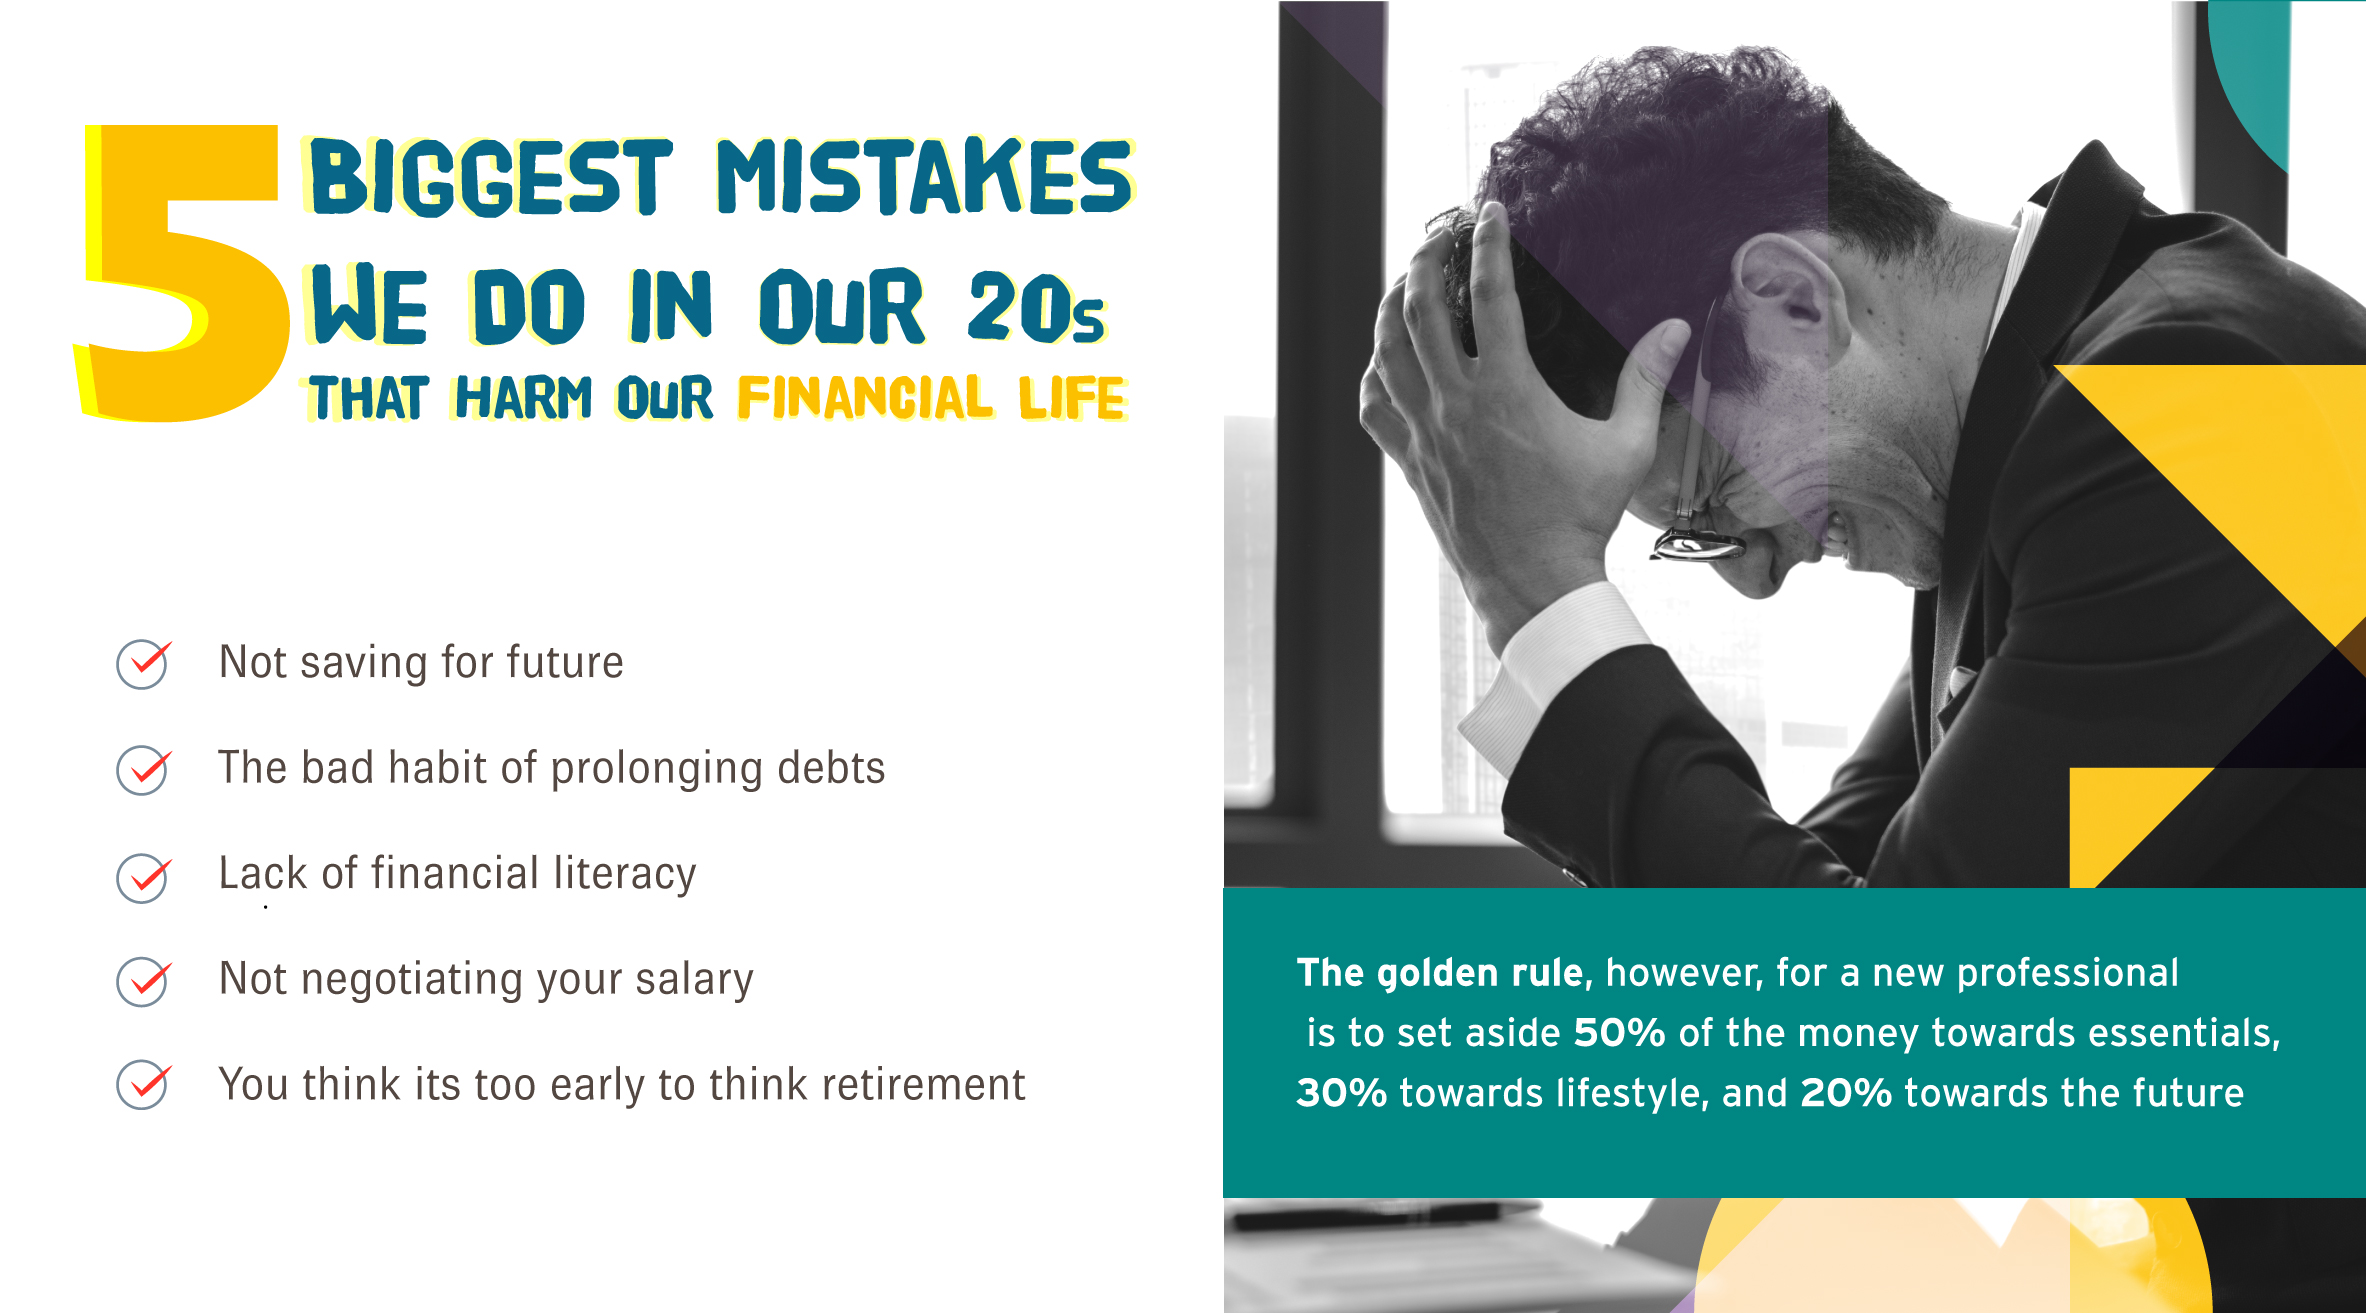 Five Biggest Mistakes We Do in Our 20s That Harm Our Financial Life